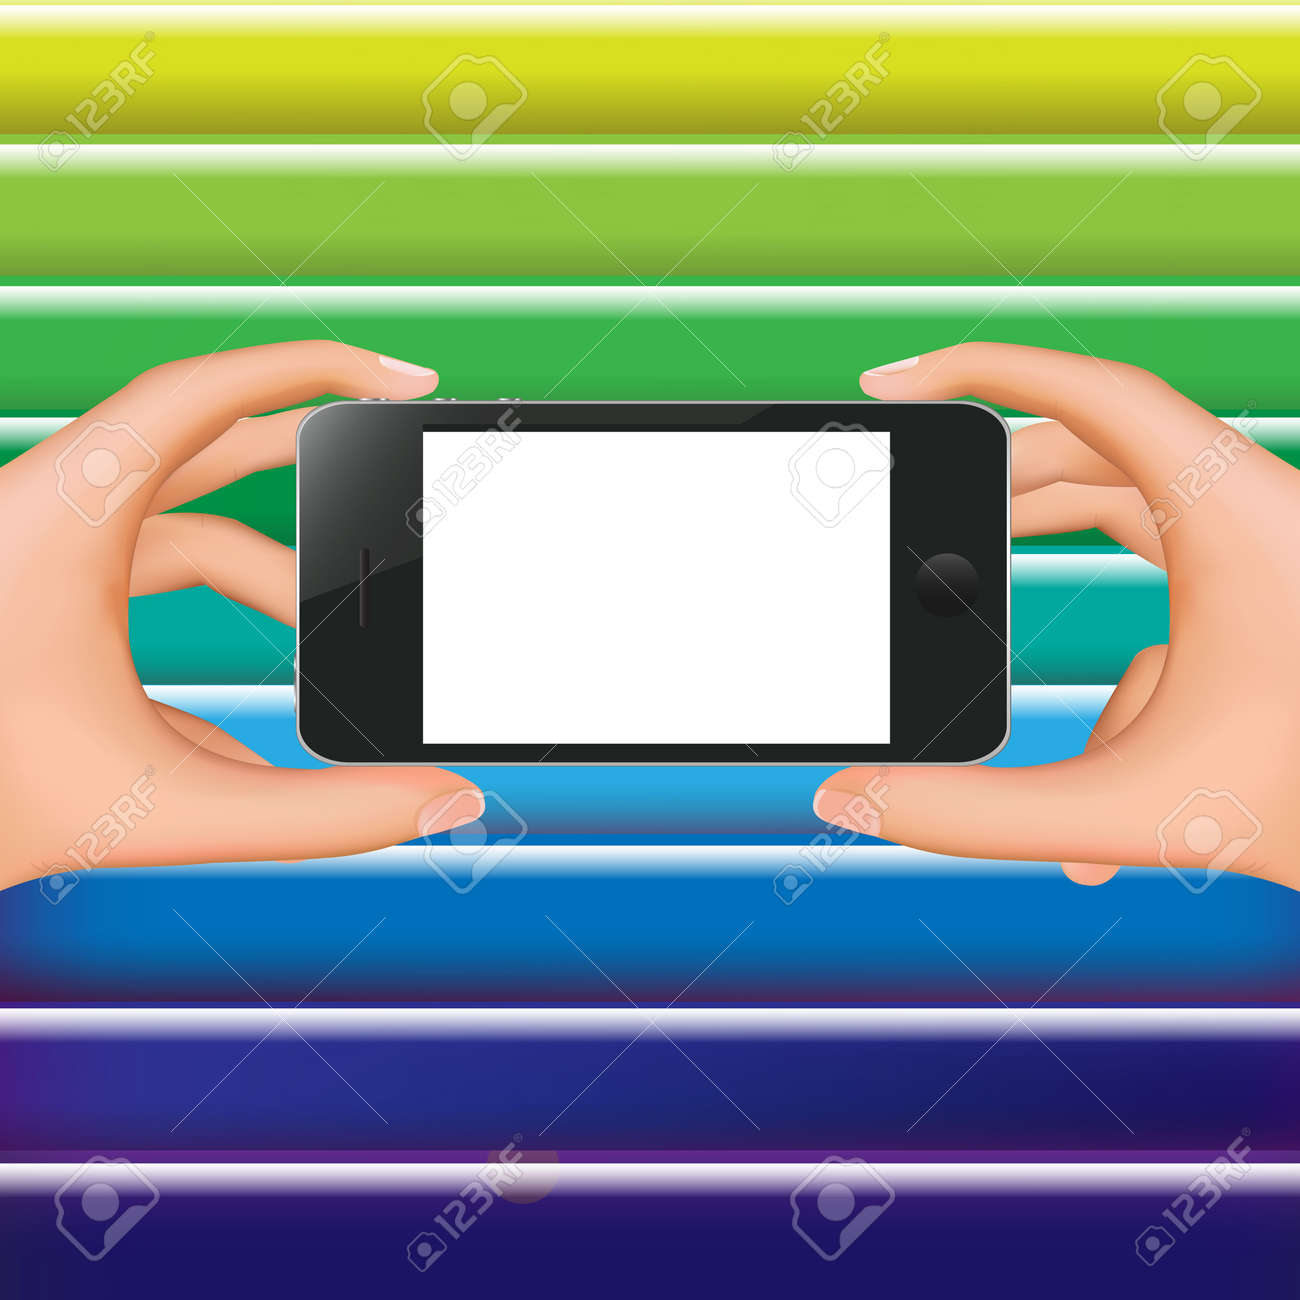 Hands Holding Phone And Colorful Background With Gradient Mesh, Illustration Stock Vector - 18544350